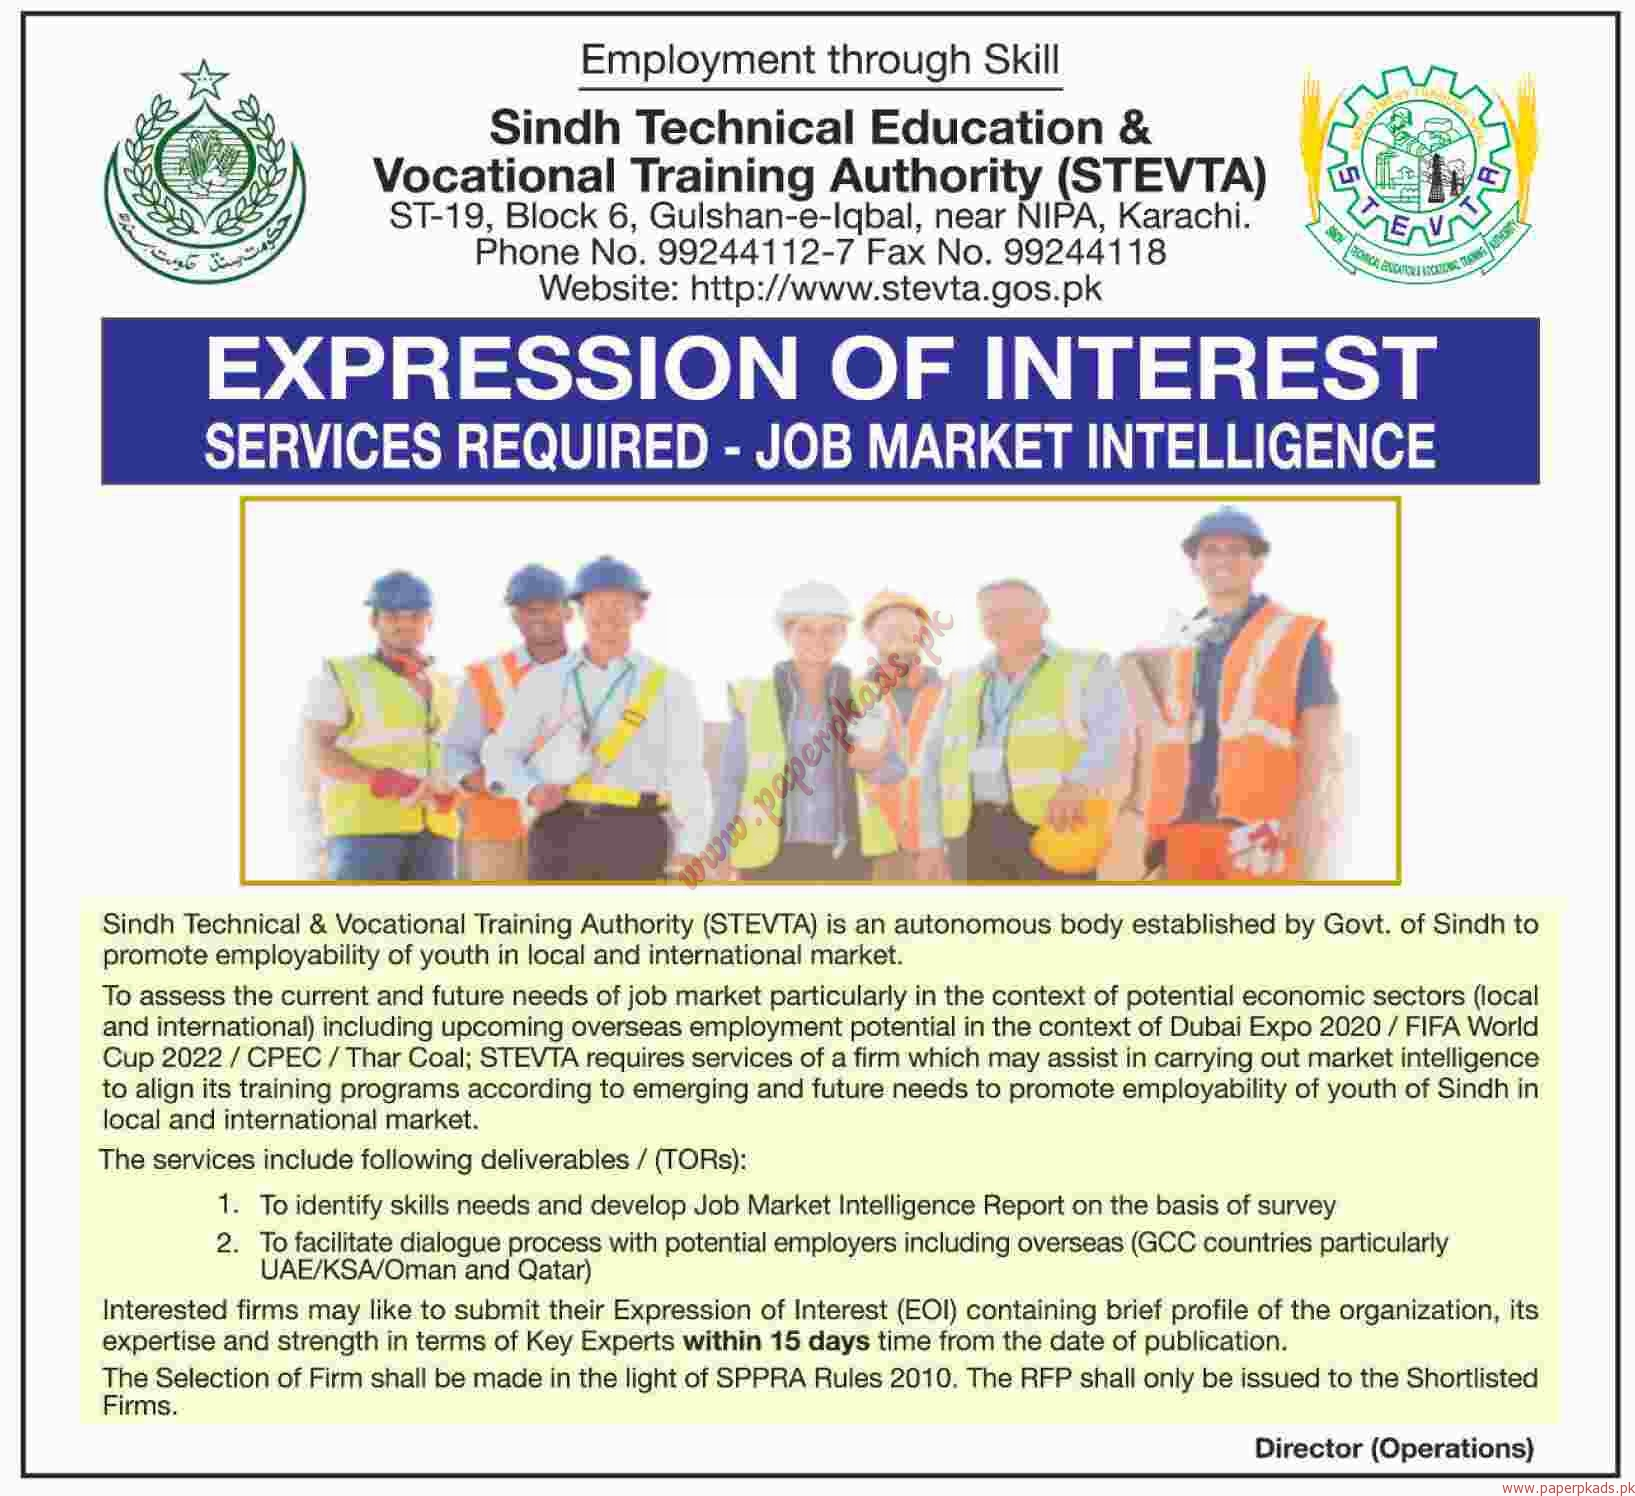 sindh technical education vocational training authority jobs dawn jobs ads 14 july 2016